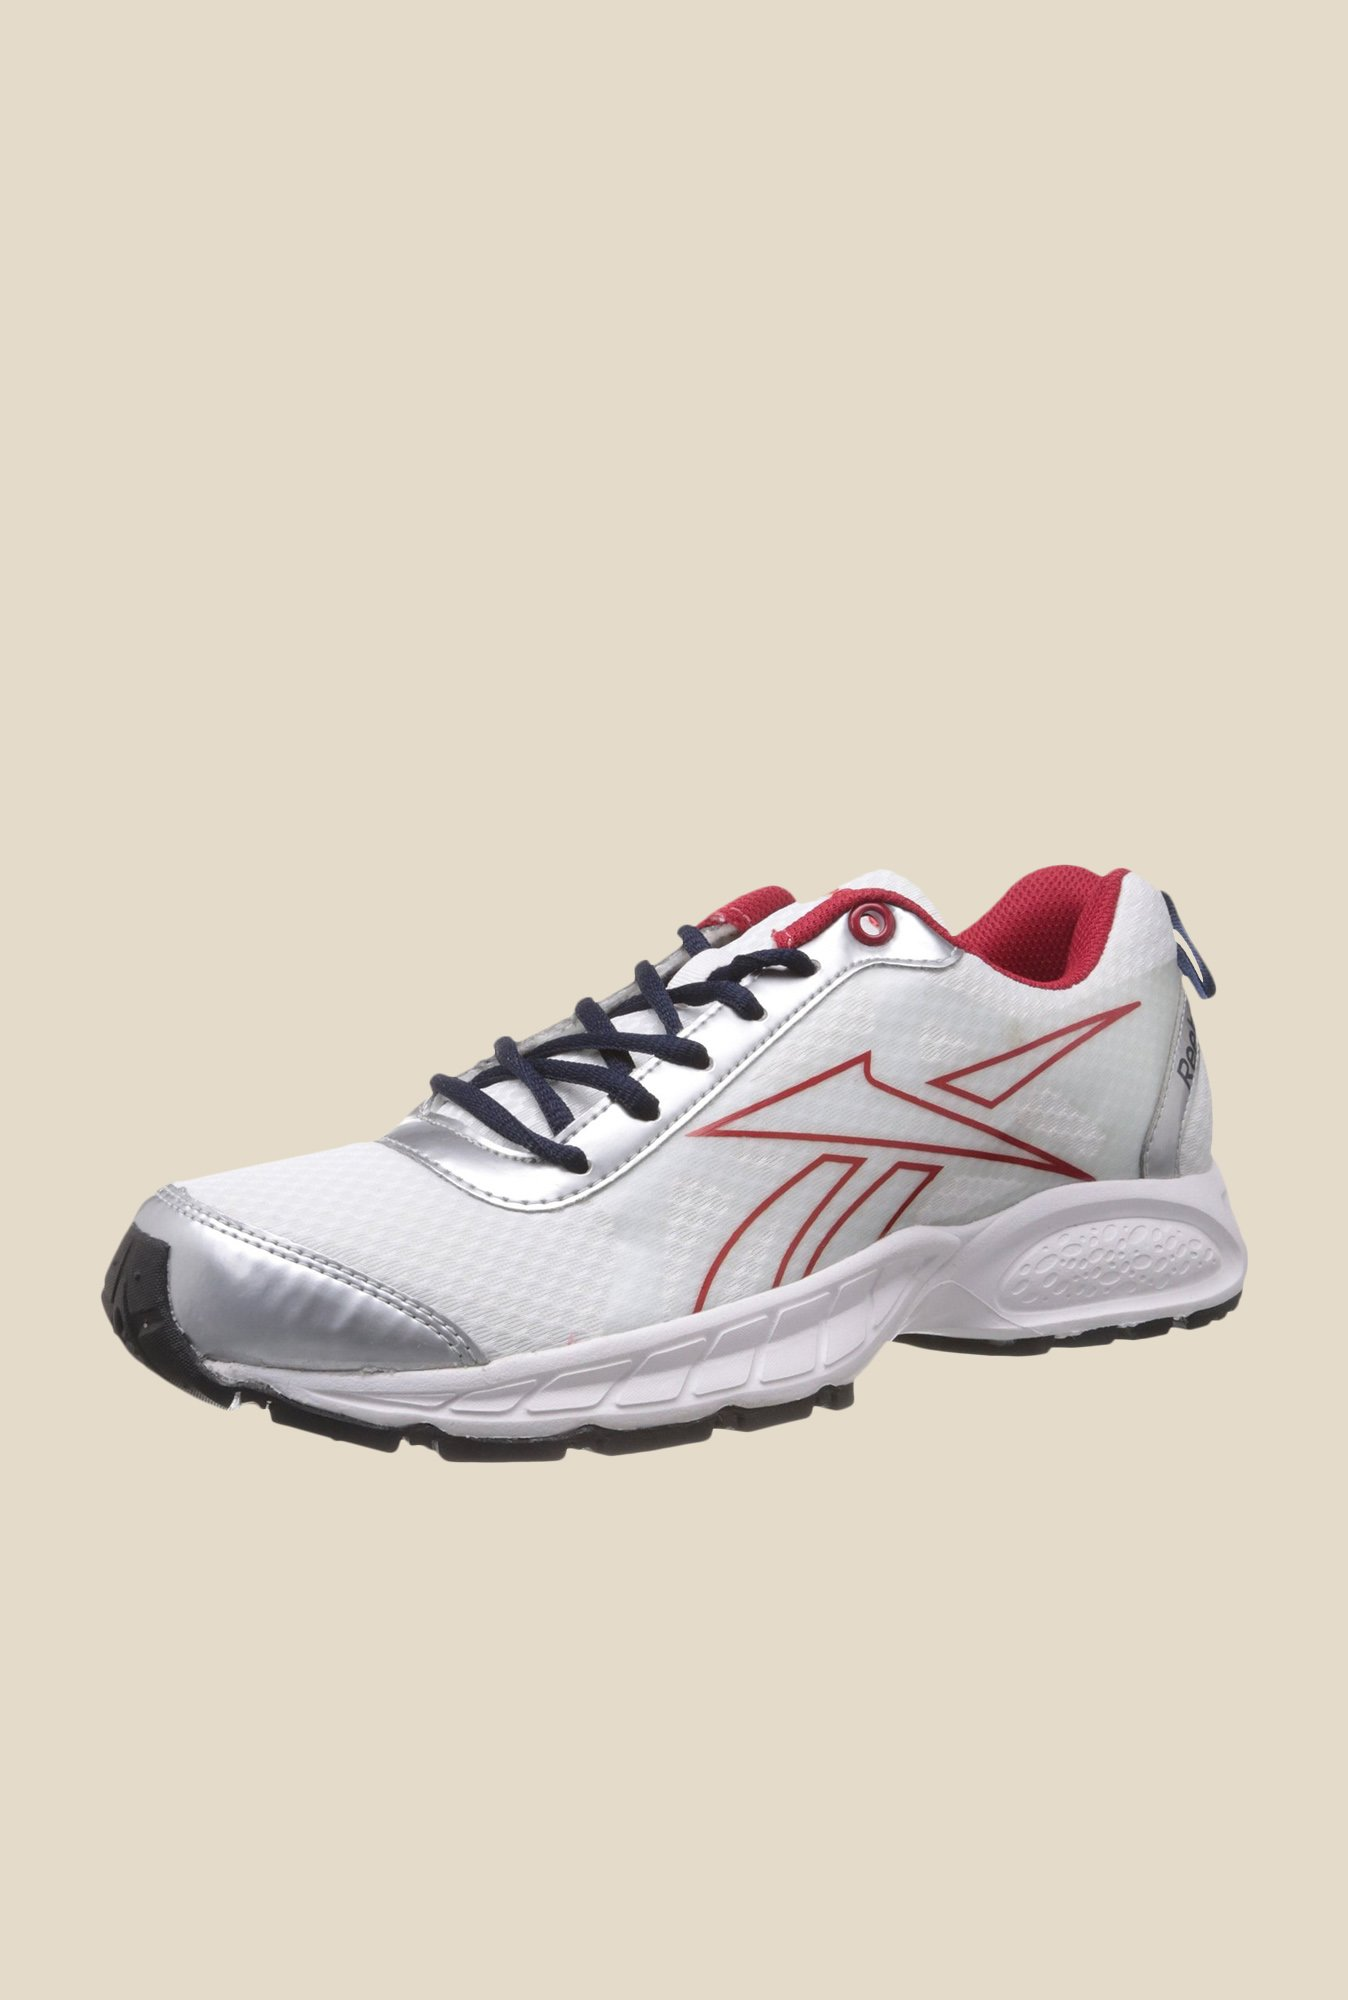 Reebok Top Runner LP White & Red Running Shoes